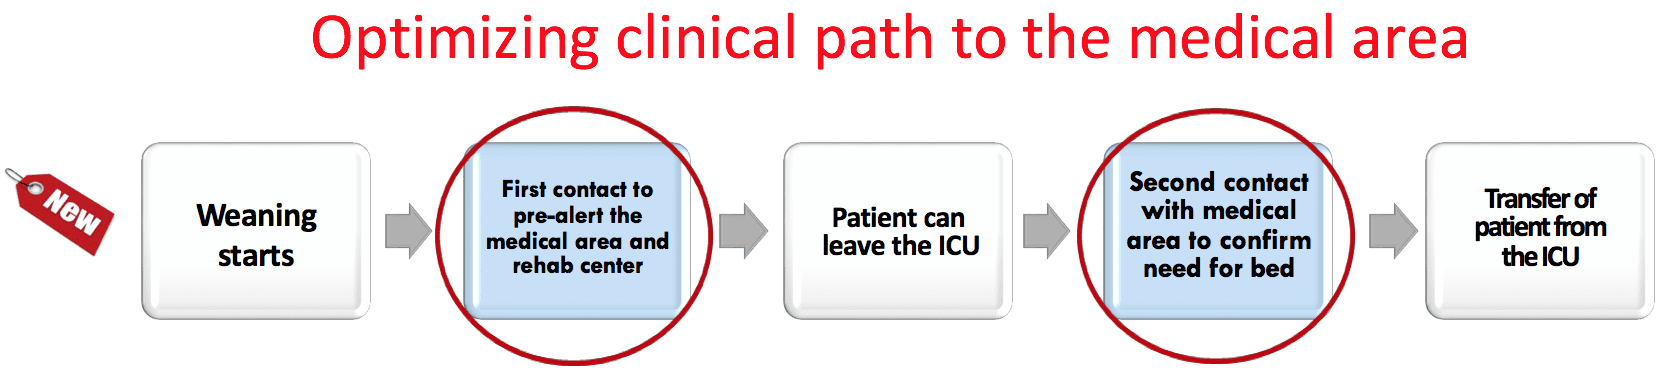 New clinical path intensive care patients